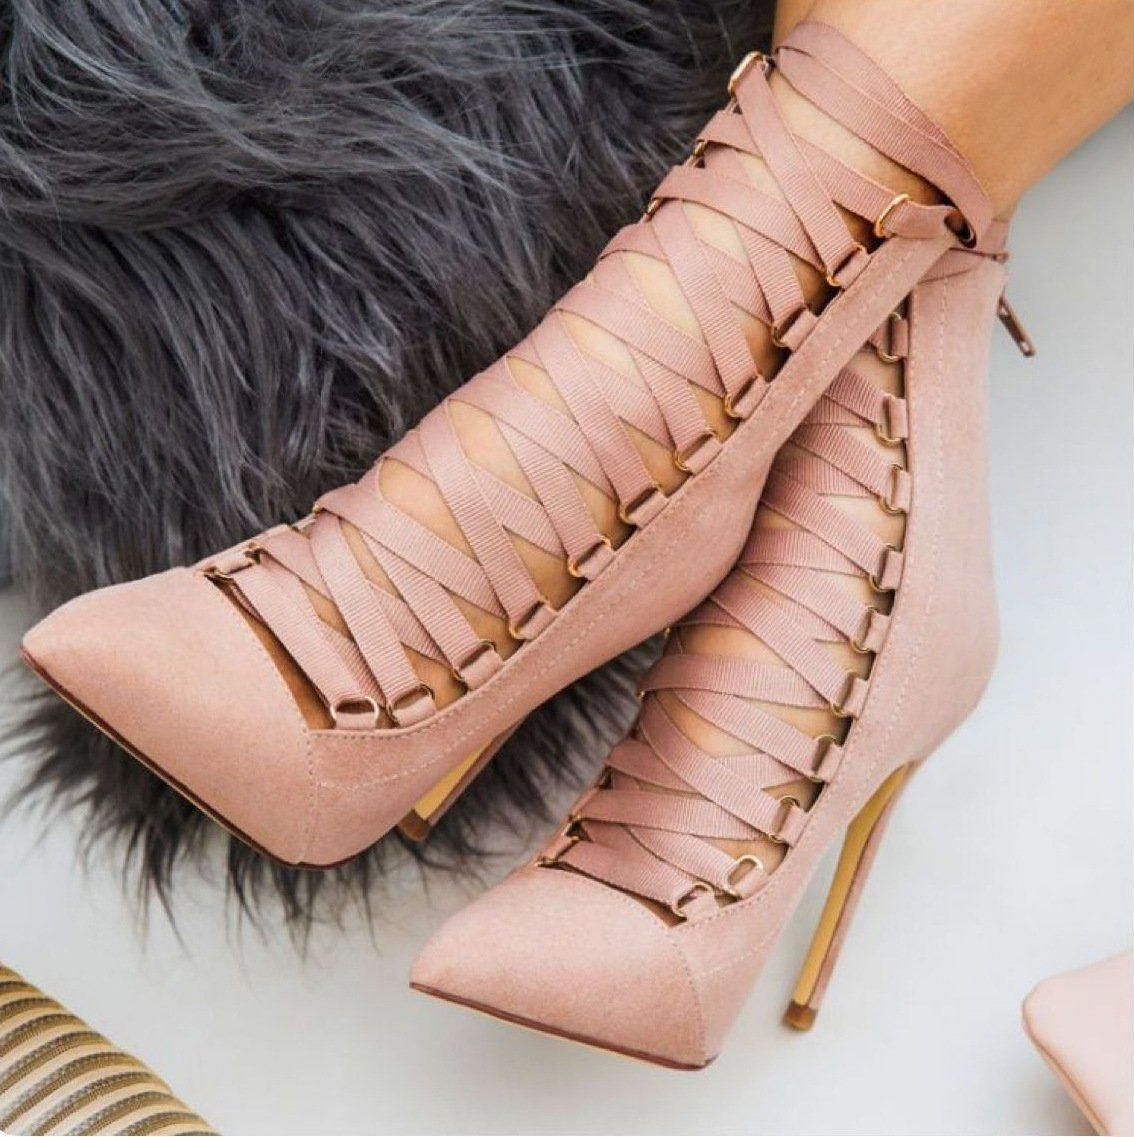 size ladies's shoes used to be exceptionally challenging to discover. Lots of ladies would have to find expert shops and wait on orders for their size. Nevertheless, Larger feet are no longer considered to be unusual as they once were.